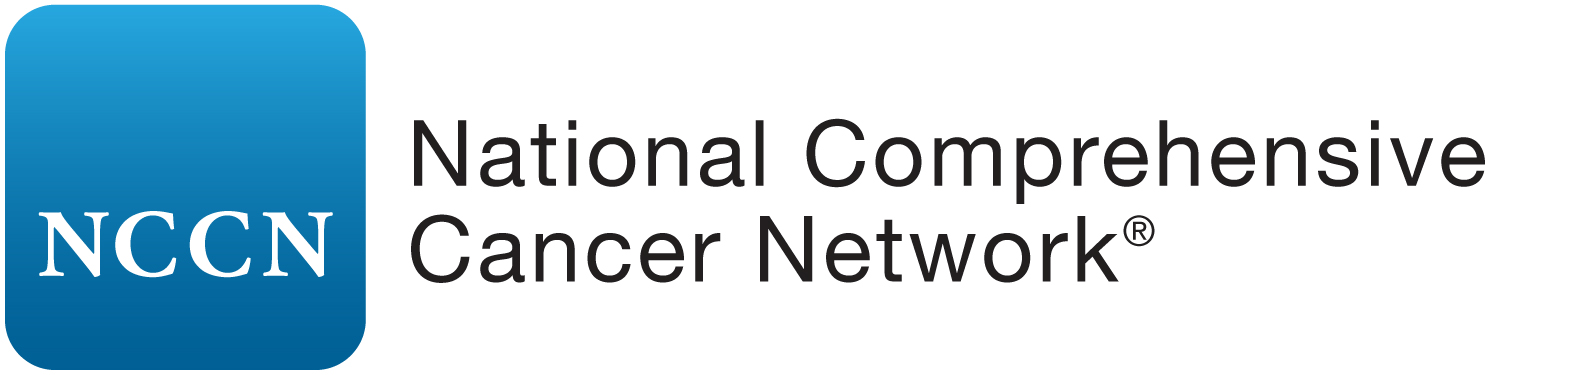 National Comprehensive Cancer Network® (NCCN®)